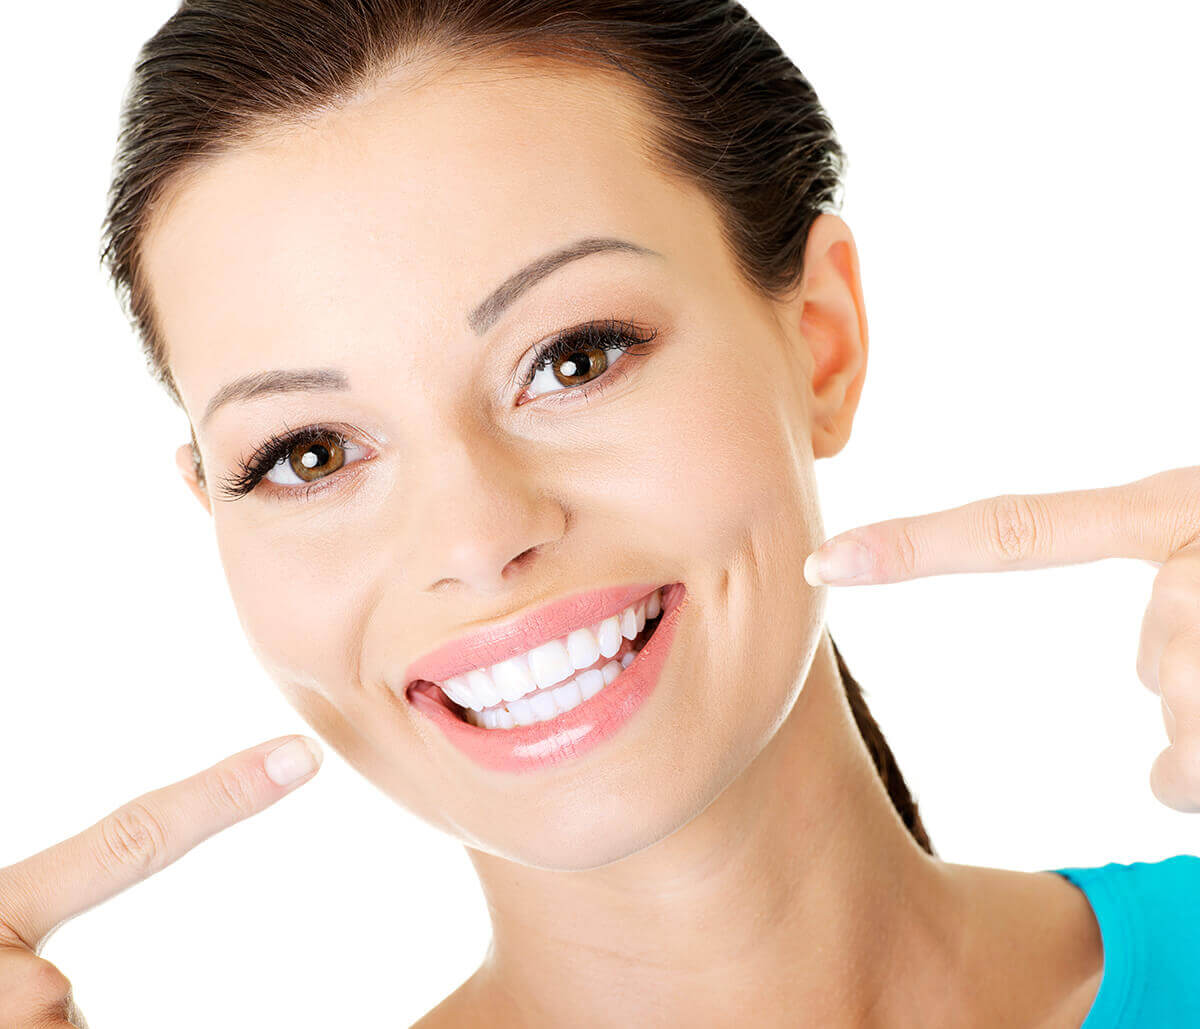 General Dentist in Houston Texas Area